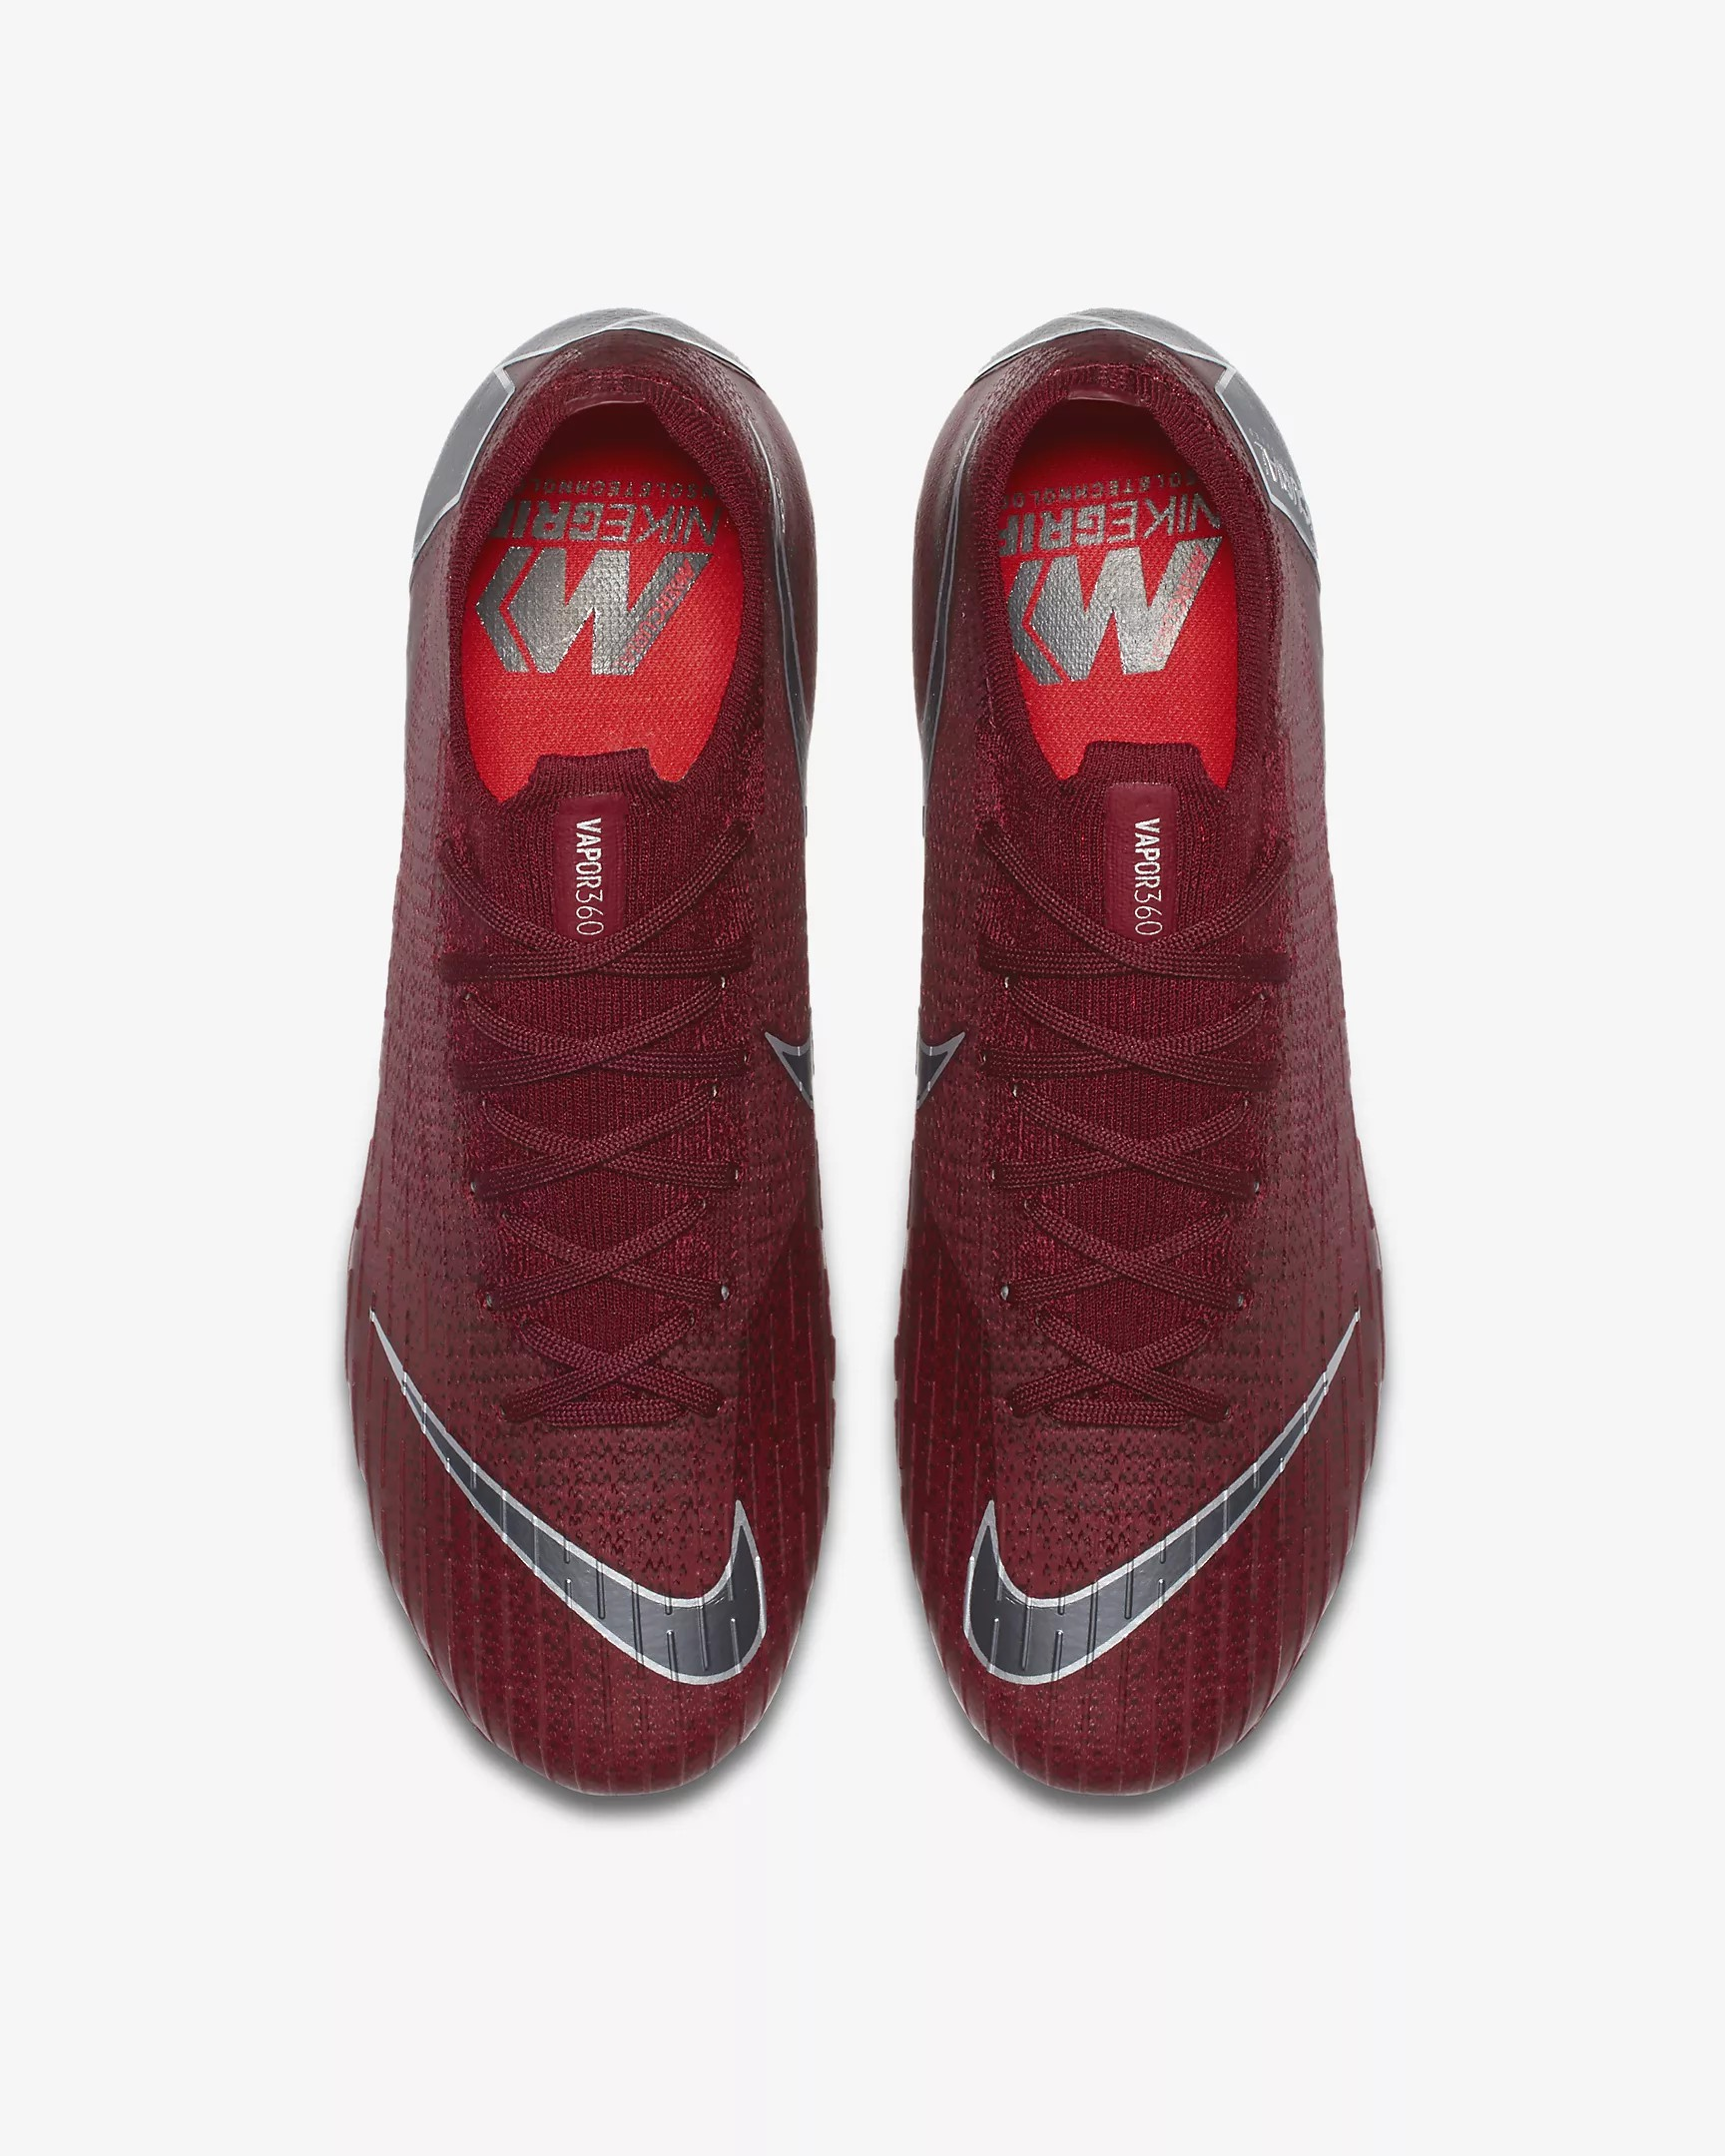 f0d74e67583 ... Click to enlarge image  nike mercurial vapor 360 elite fg rising fire team red bright crimson metallic dark grey d.jpg  ...